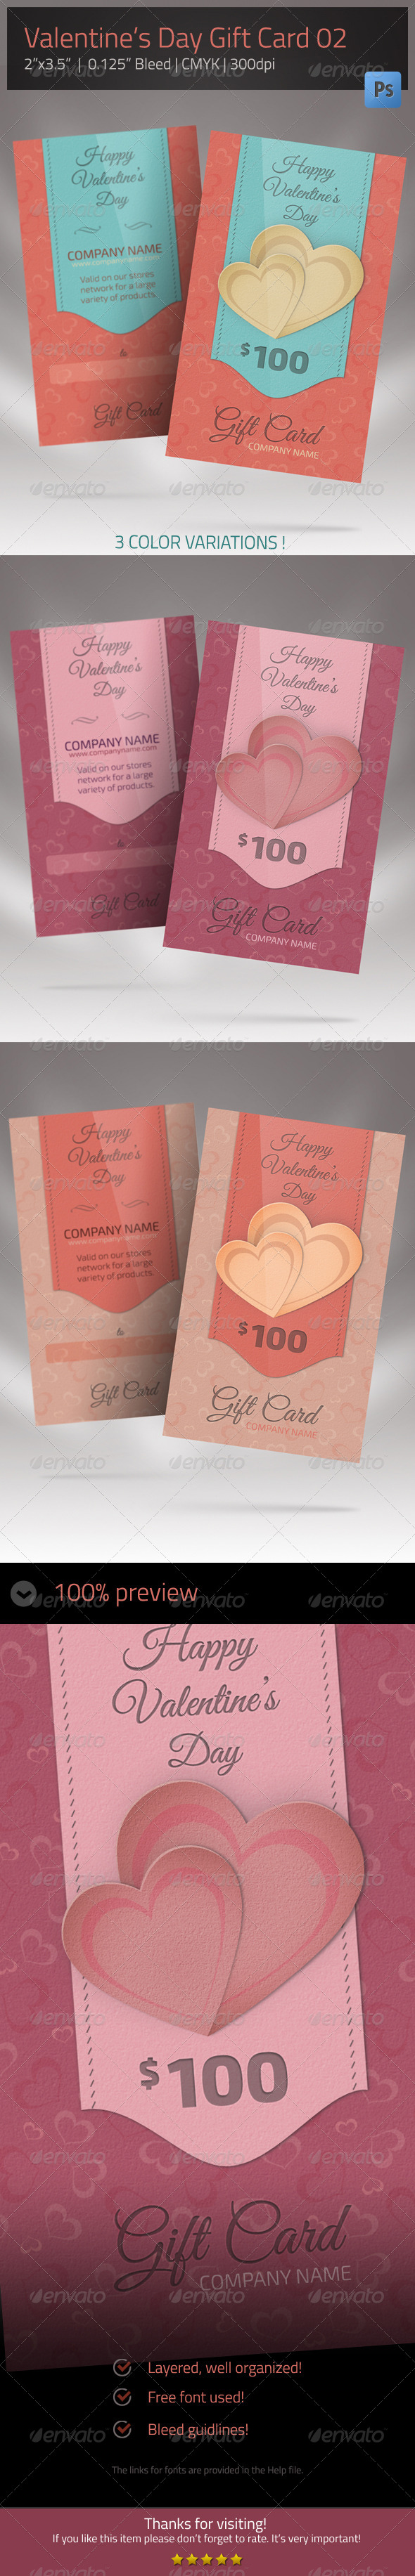 GraphicRiver Gift Card for Valentines Day 02 6674189